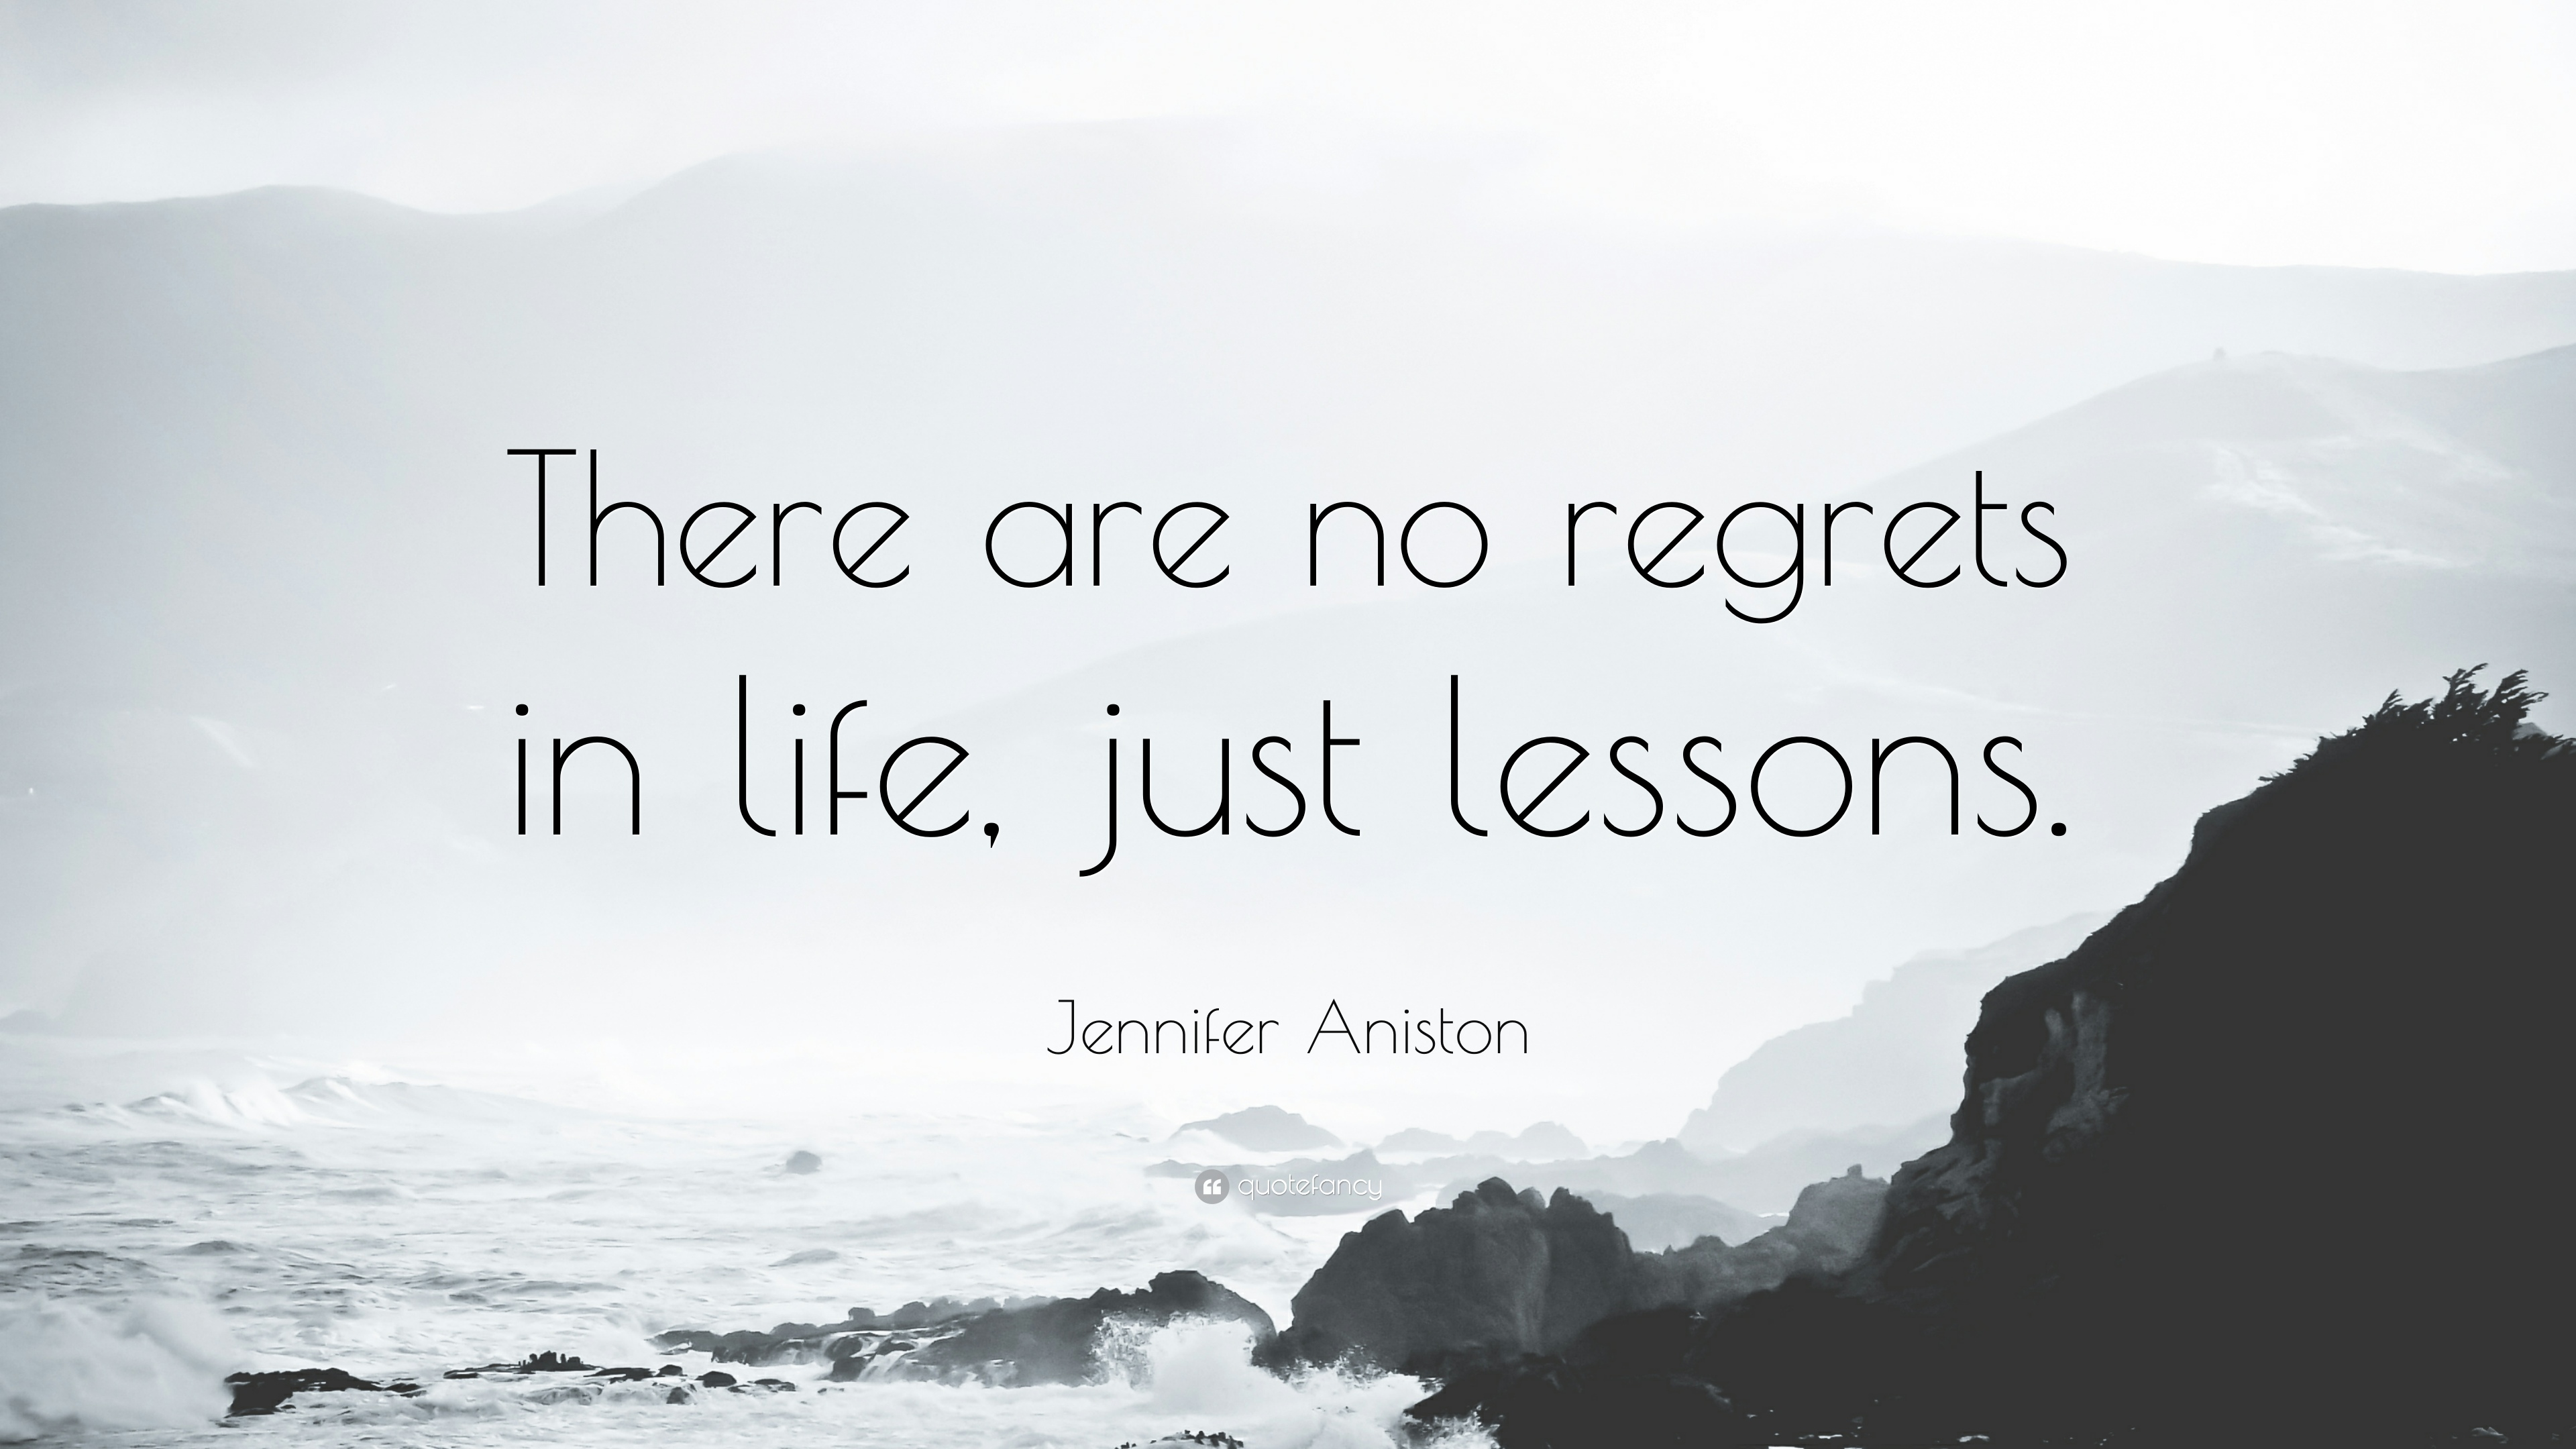 Jennifer Aniston Quote There Are No Regrets In Life Just Lessons